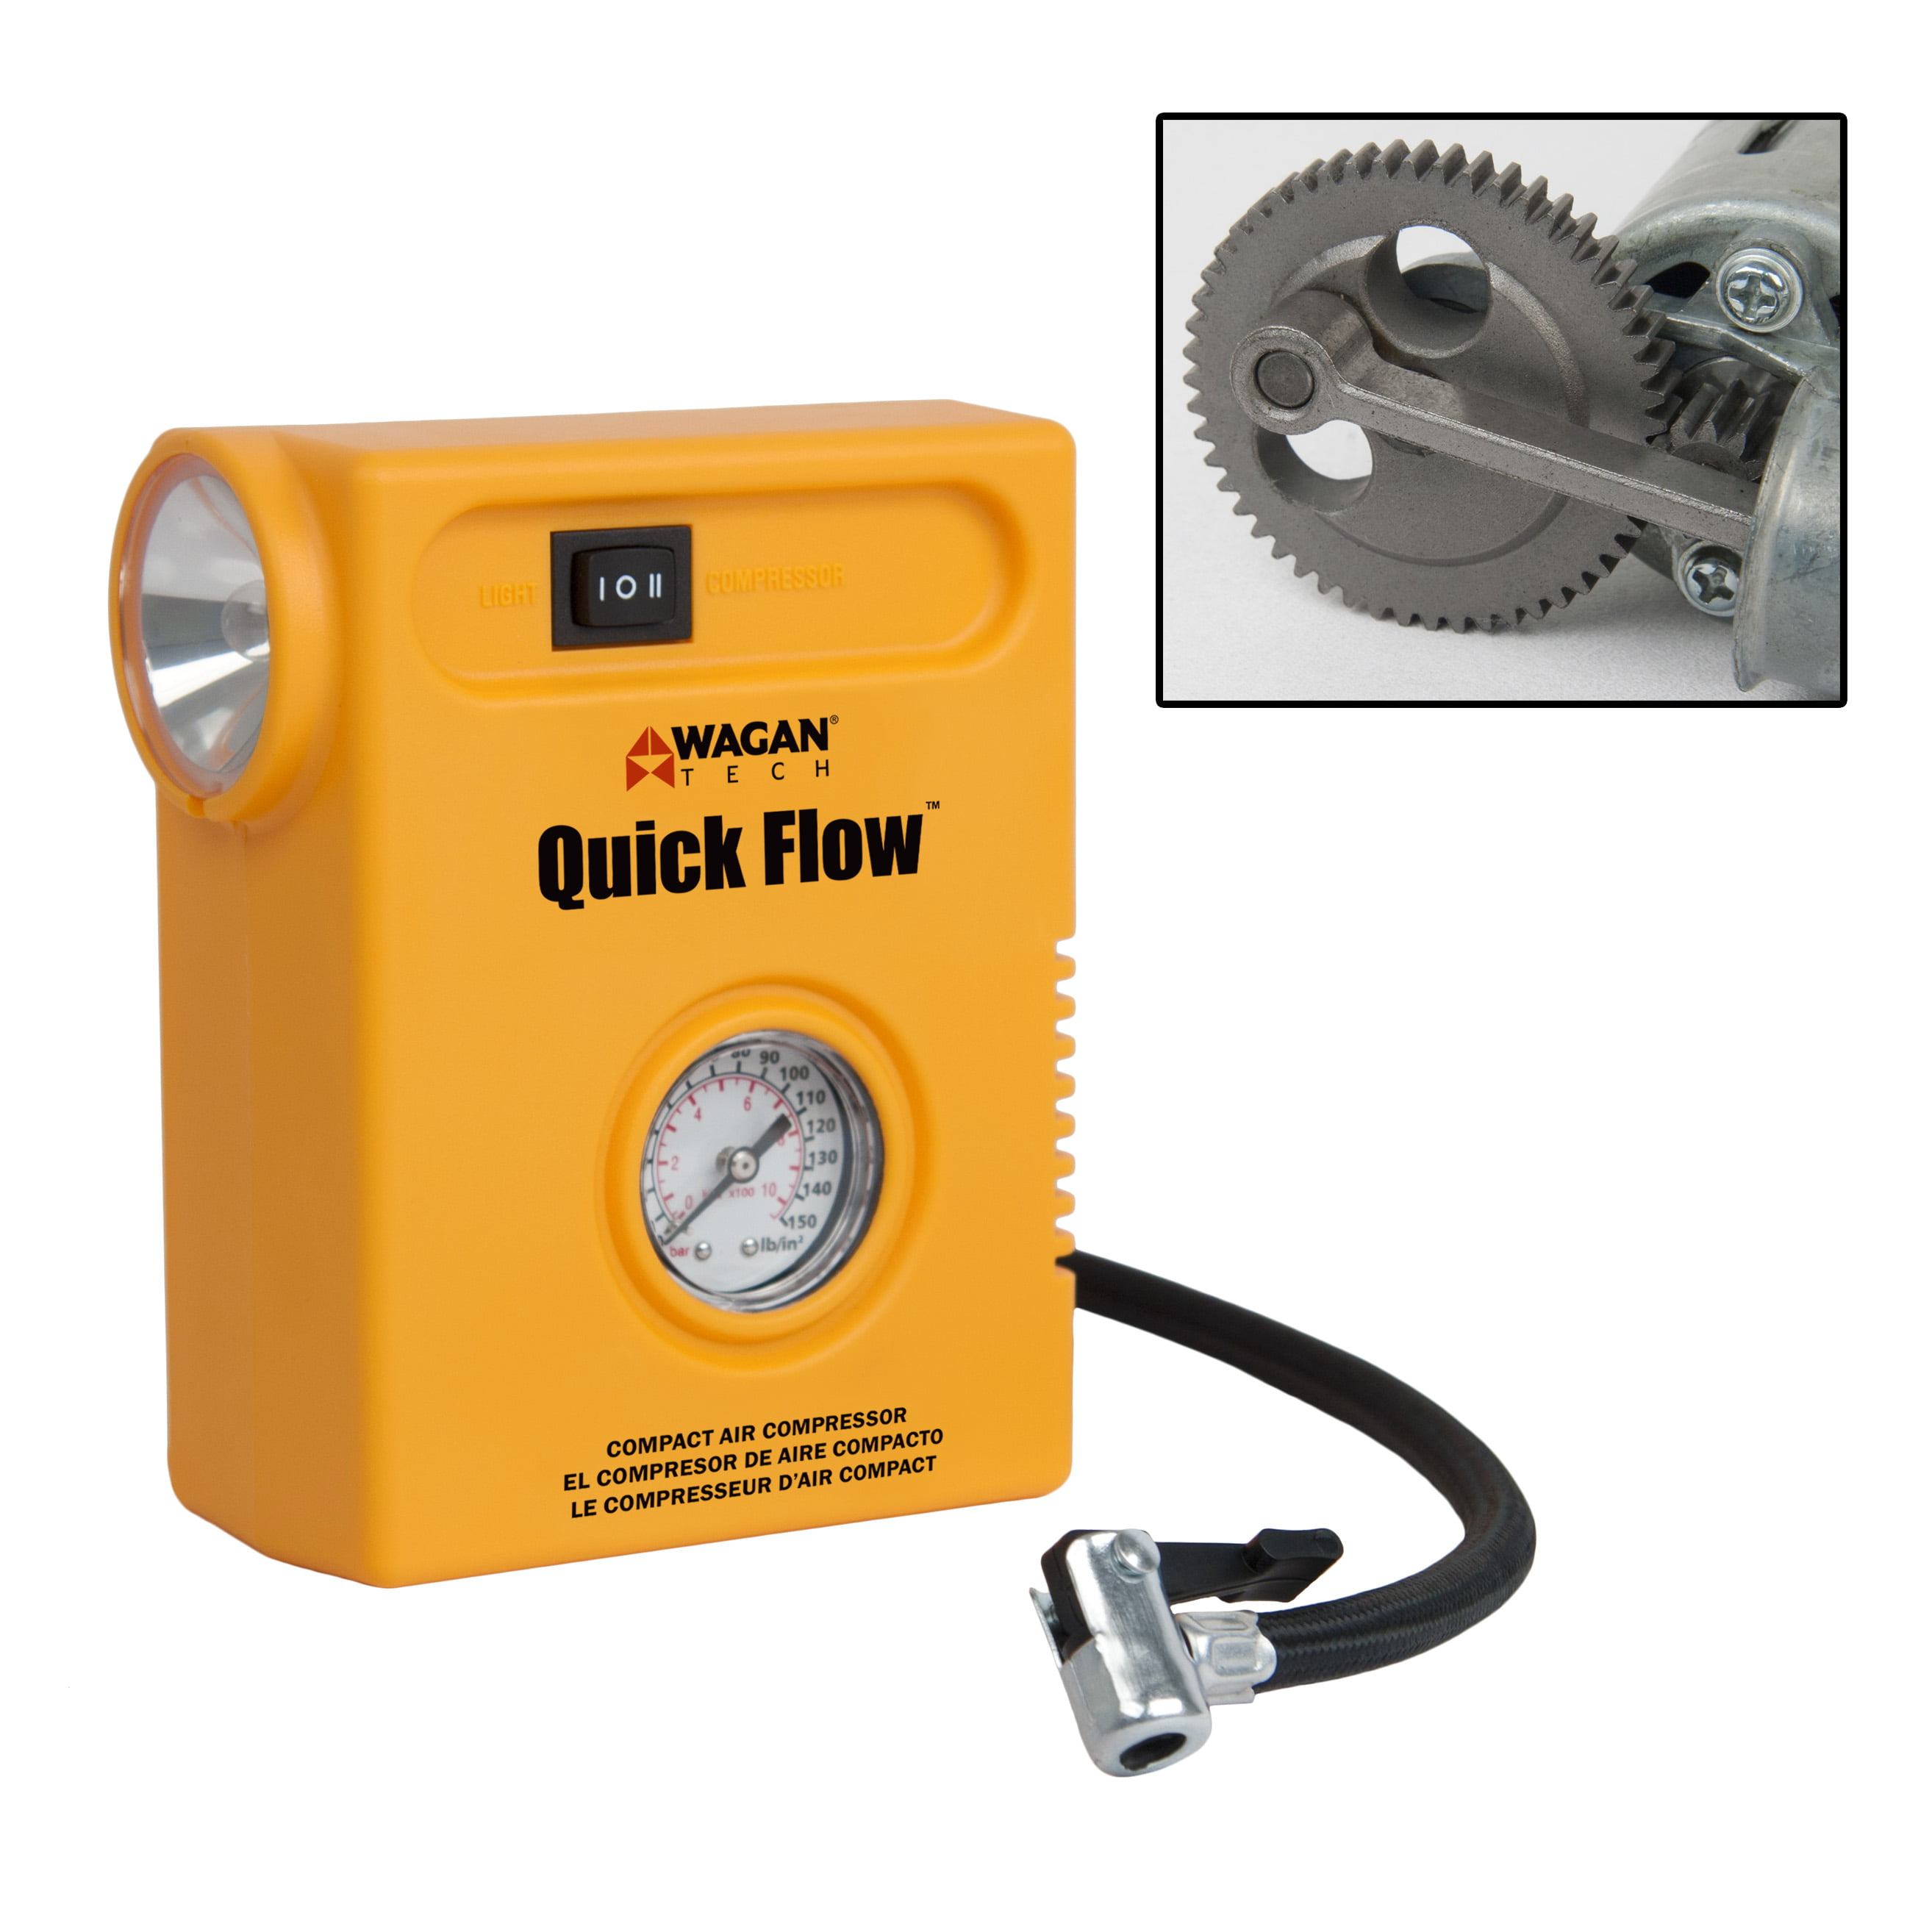 Wagan Tech Quick Flow Compact Air Compressor by Wagan Corp.